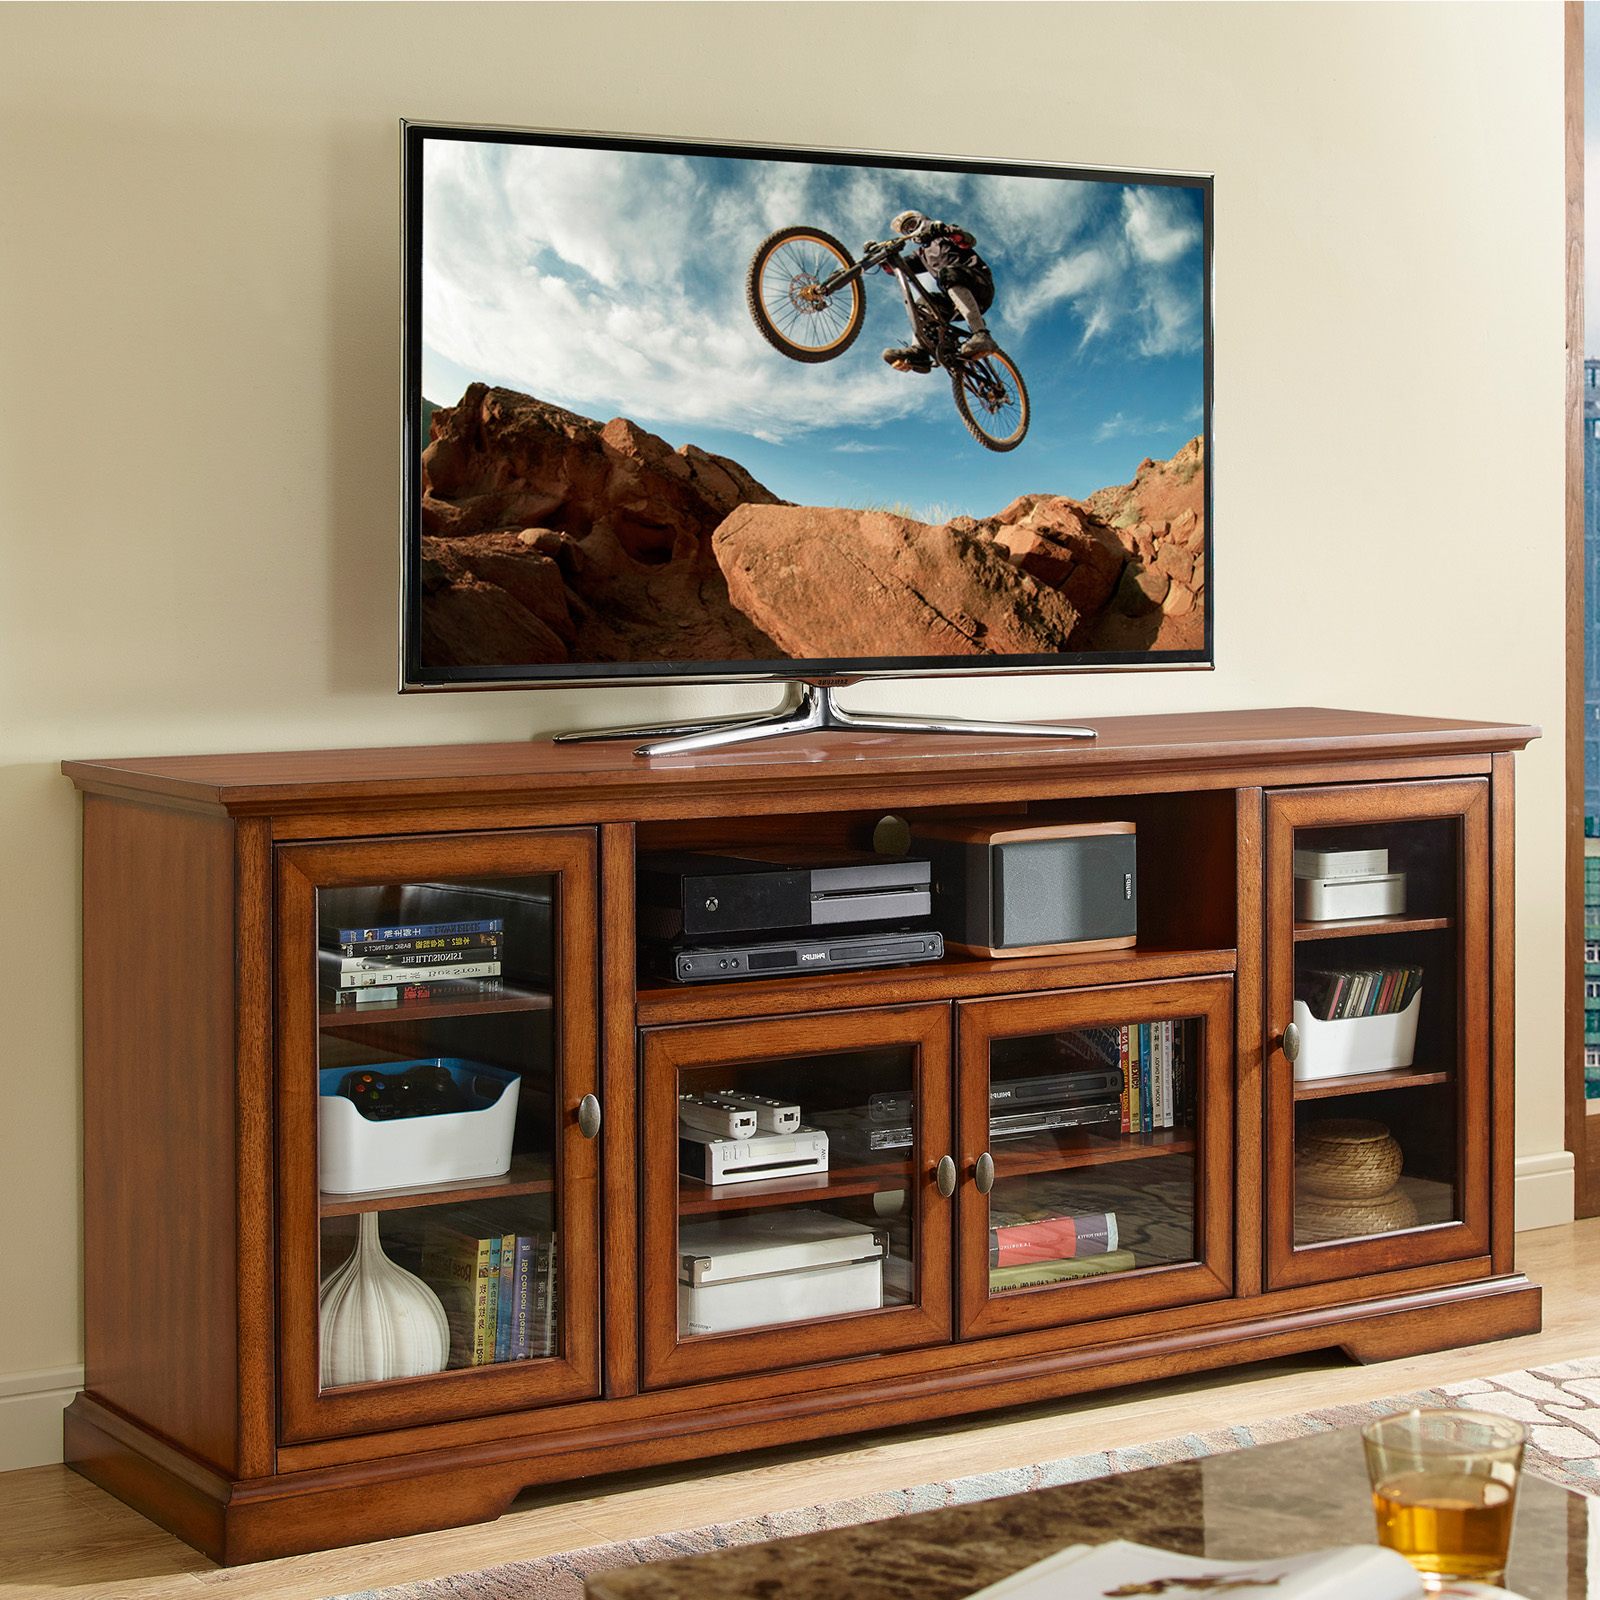 Walker Edison Style Wood Tv Stand – Tv Stands At Hayneedle With Regard To 2017 Walker Edison Contemporary Tall Tv Stands (View 6 of 10)